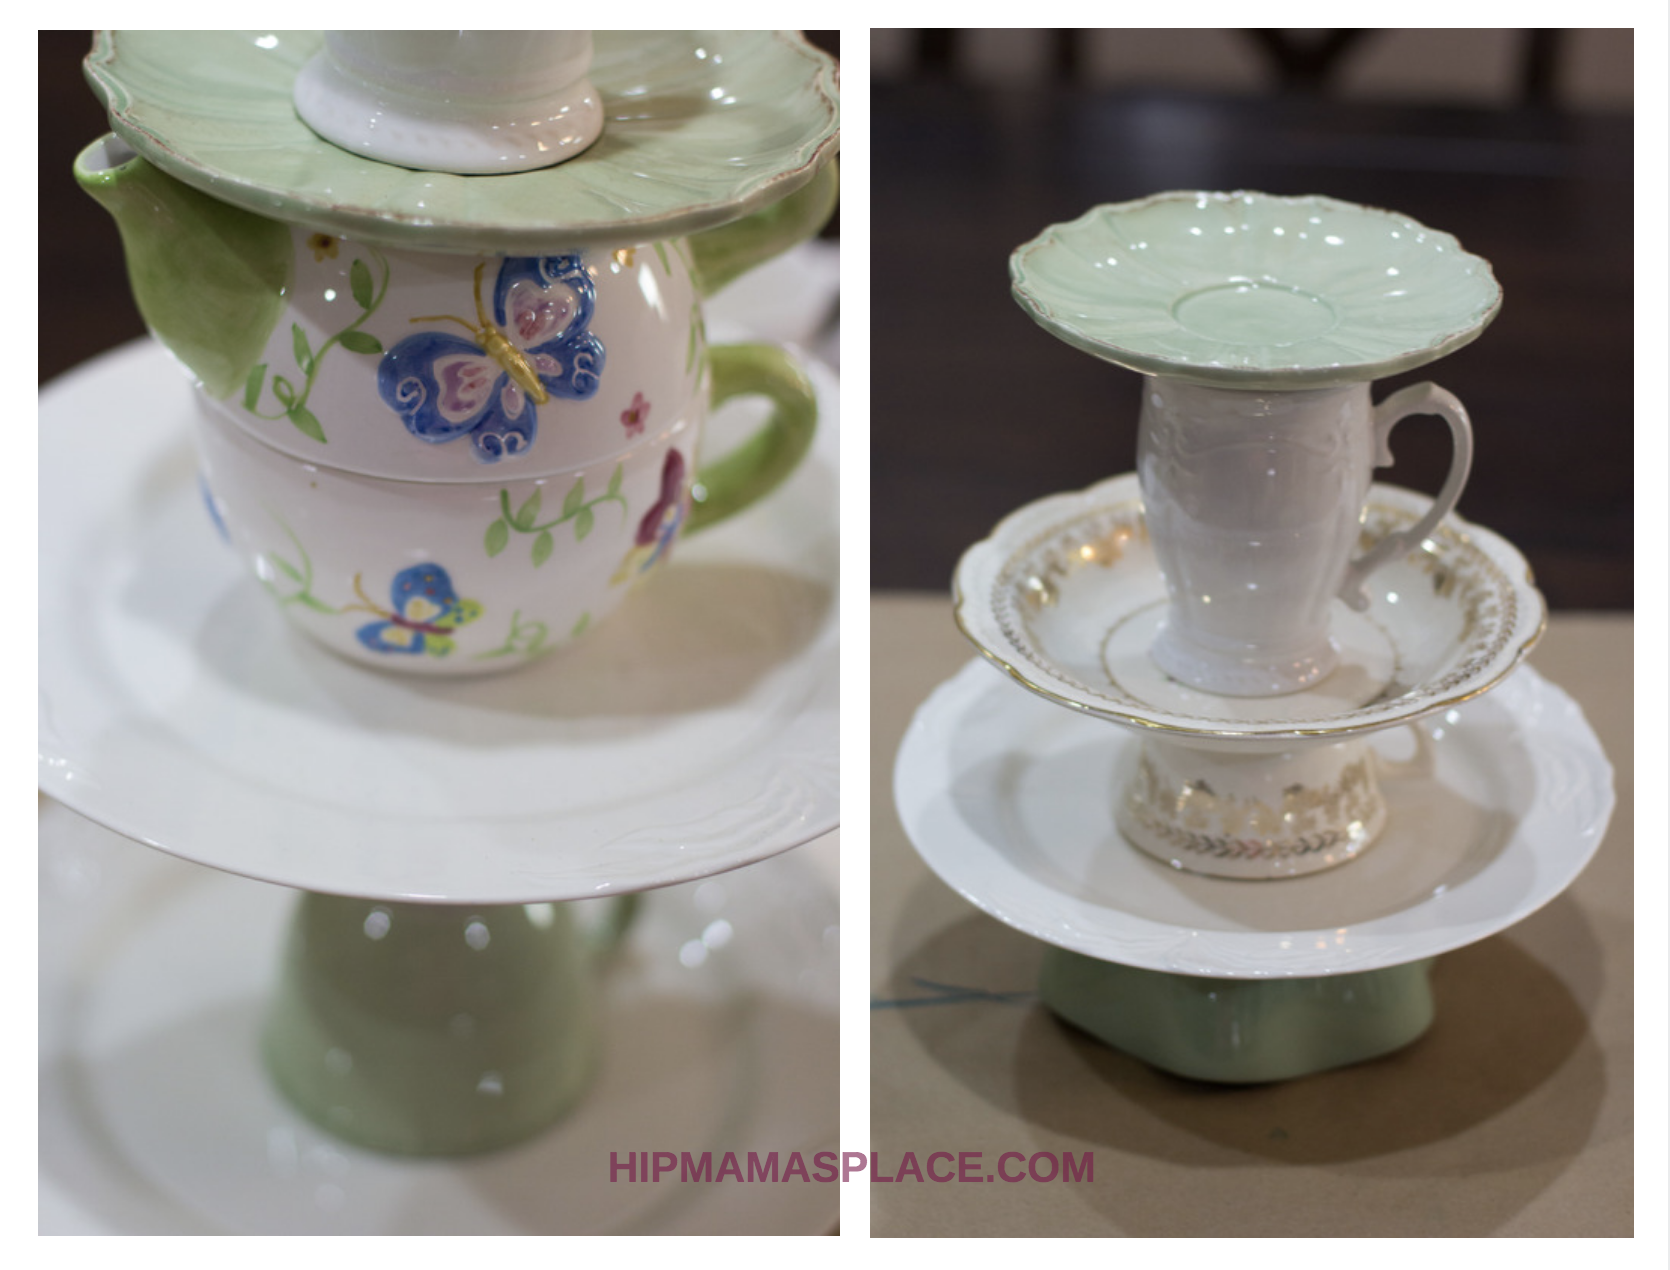 Here's a lovely DIY upcycled tiered cake stand that I made out of coordinating plates, bowls and coffee cups from the thrift store!